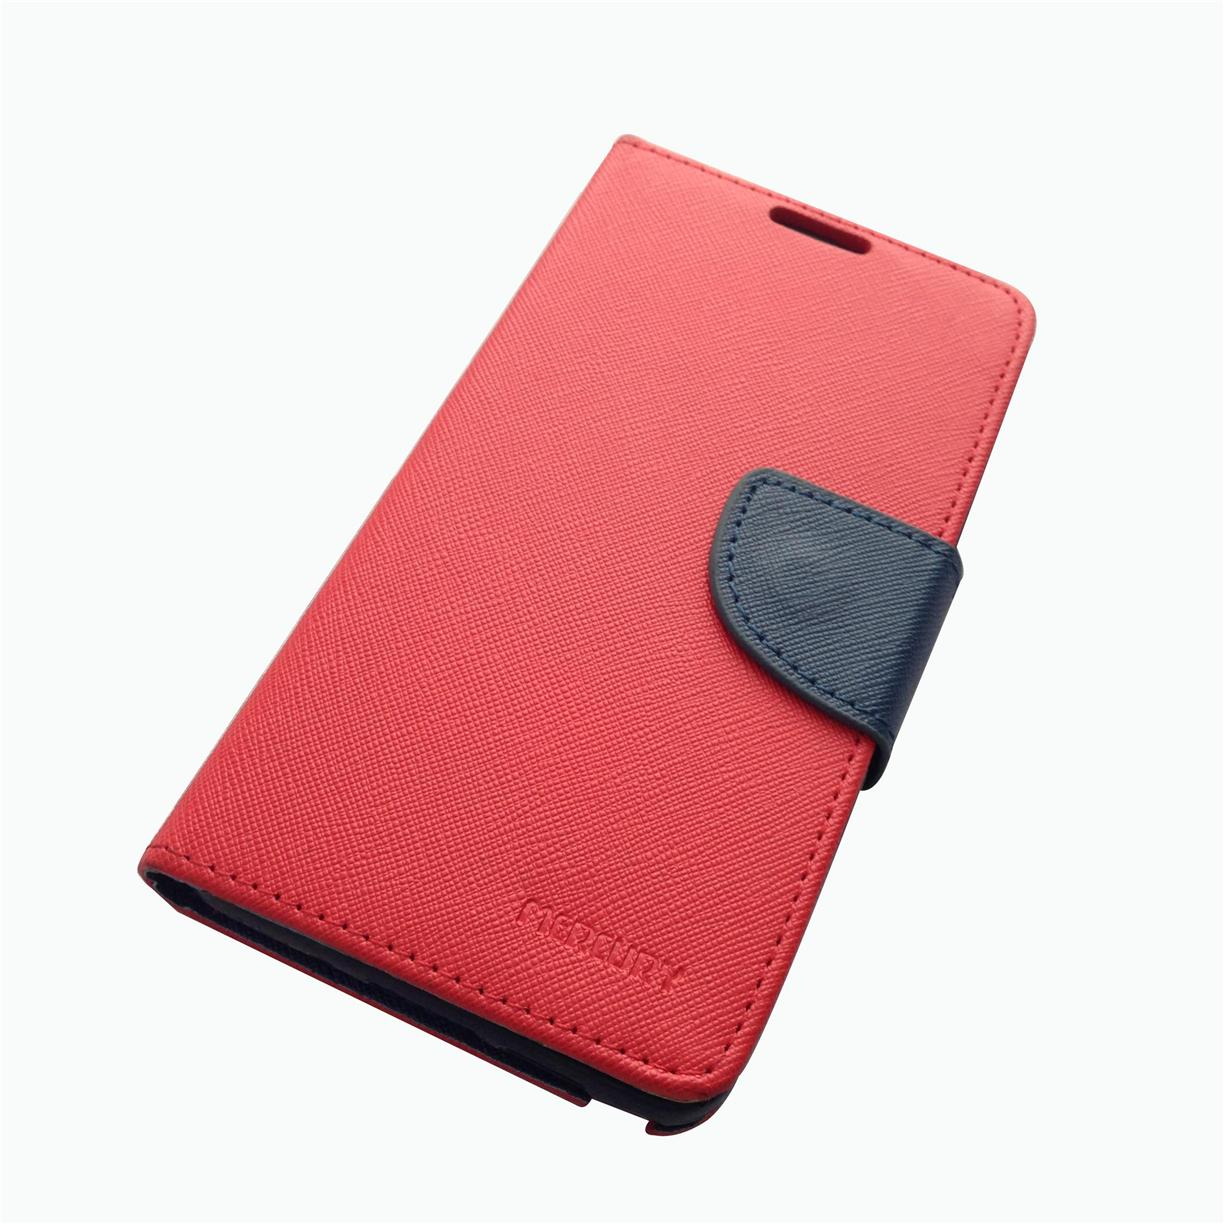 Flip wallet case / Flip cover for SAMSUNG GALAXY NOTE 3 N9005